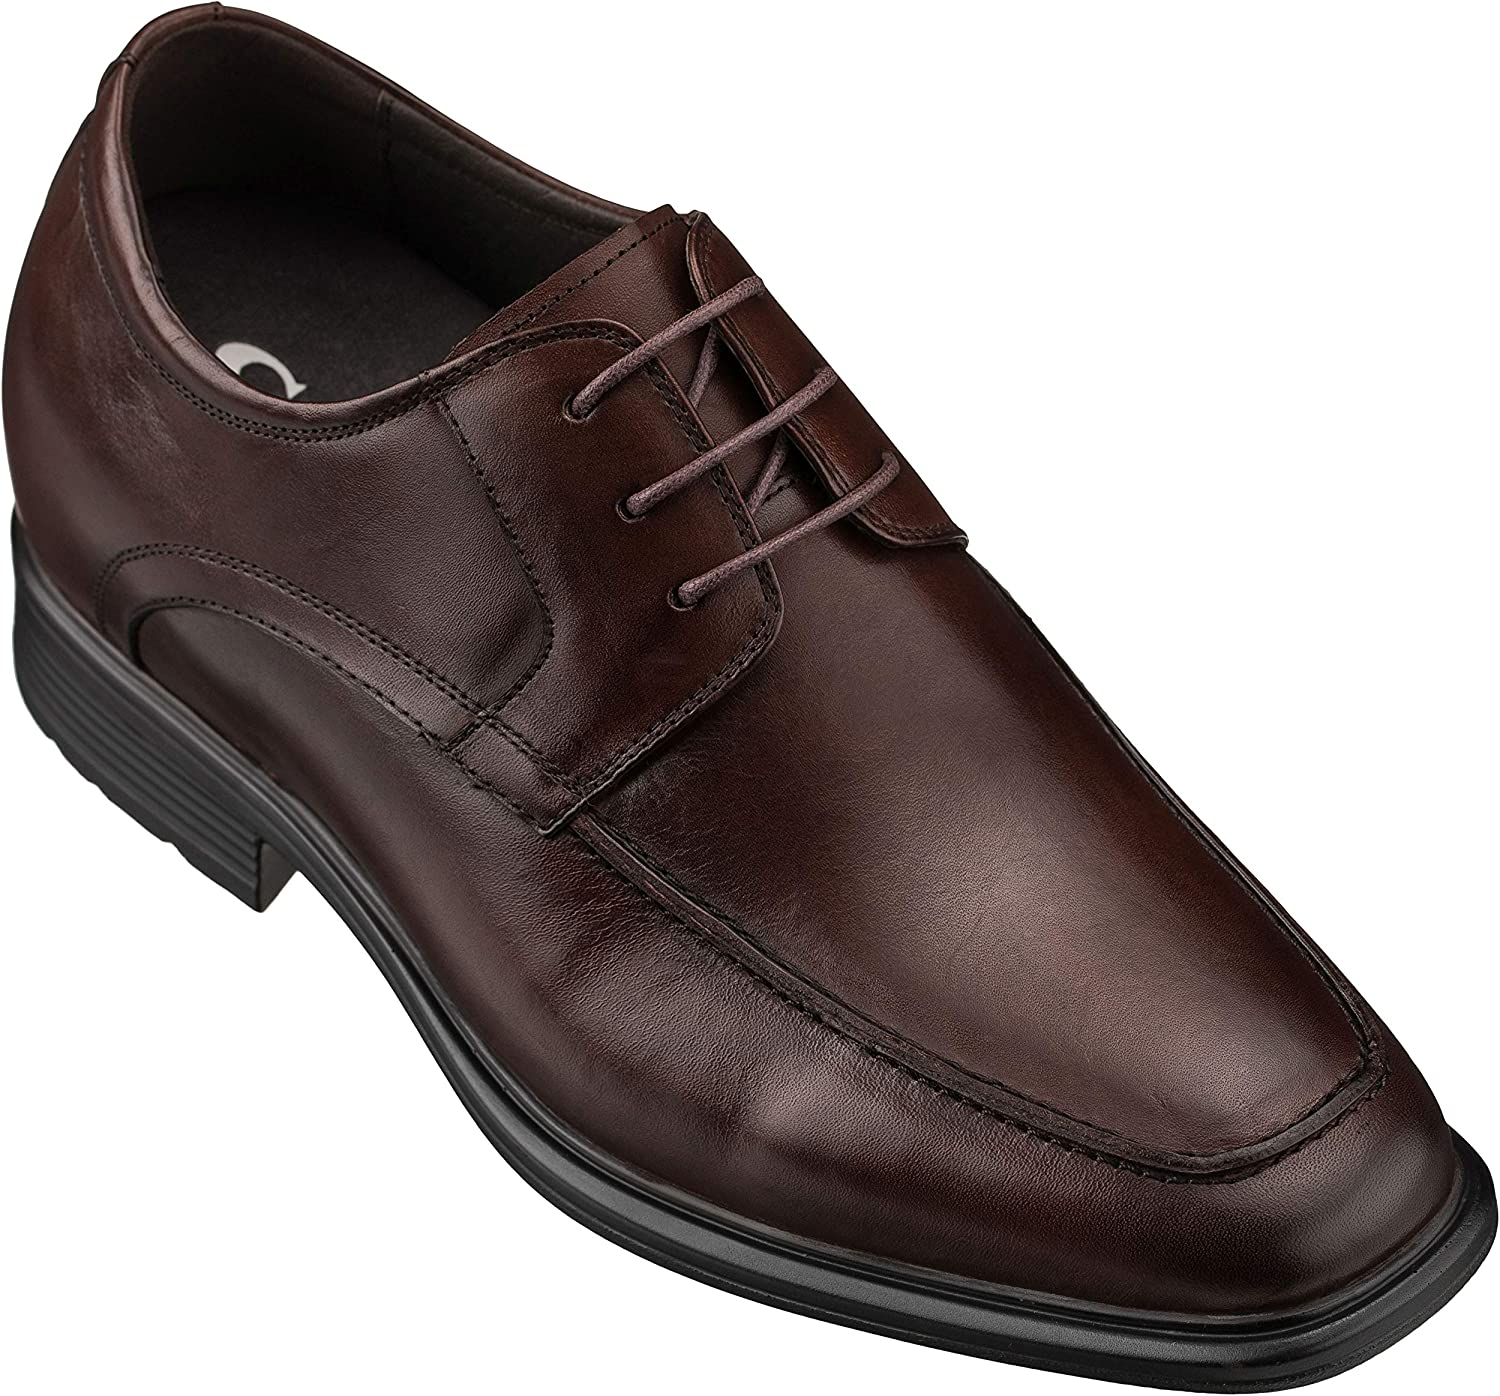 CALTO Men's Invisible Height Increasing Elevator Oxfords Shoes - Dark Brown Leather Lace-up Dress Derby - 3 Inches Taller - G60127